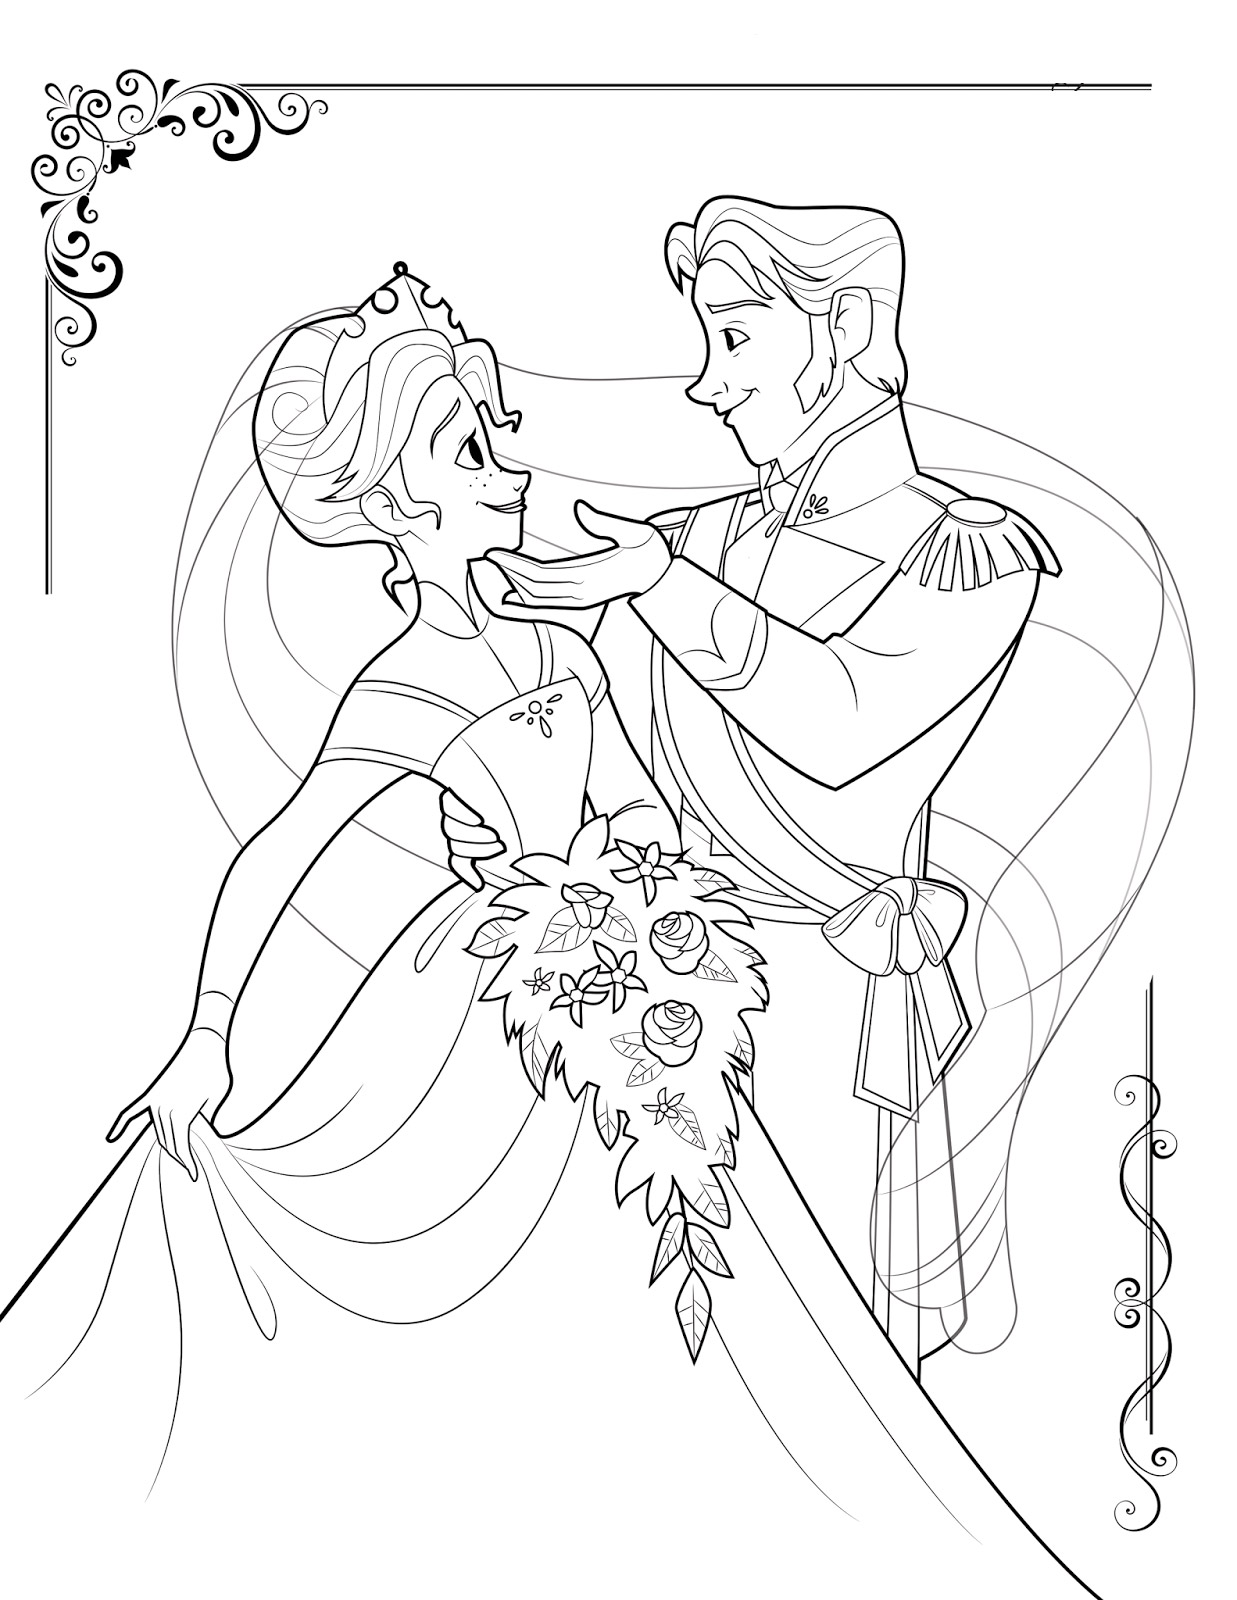 coloring pages to print frozen find 16 awesome frozen coloring pages to print instant print frozen coloring to pages